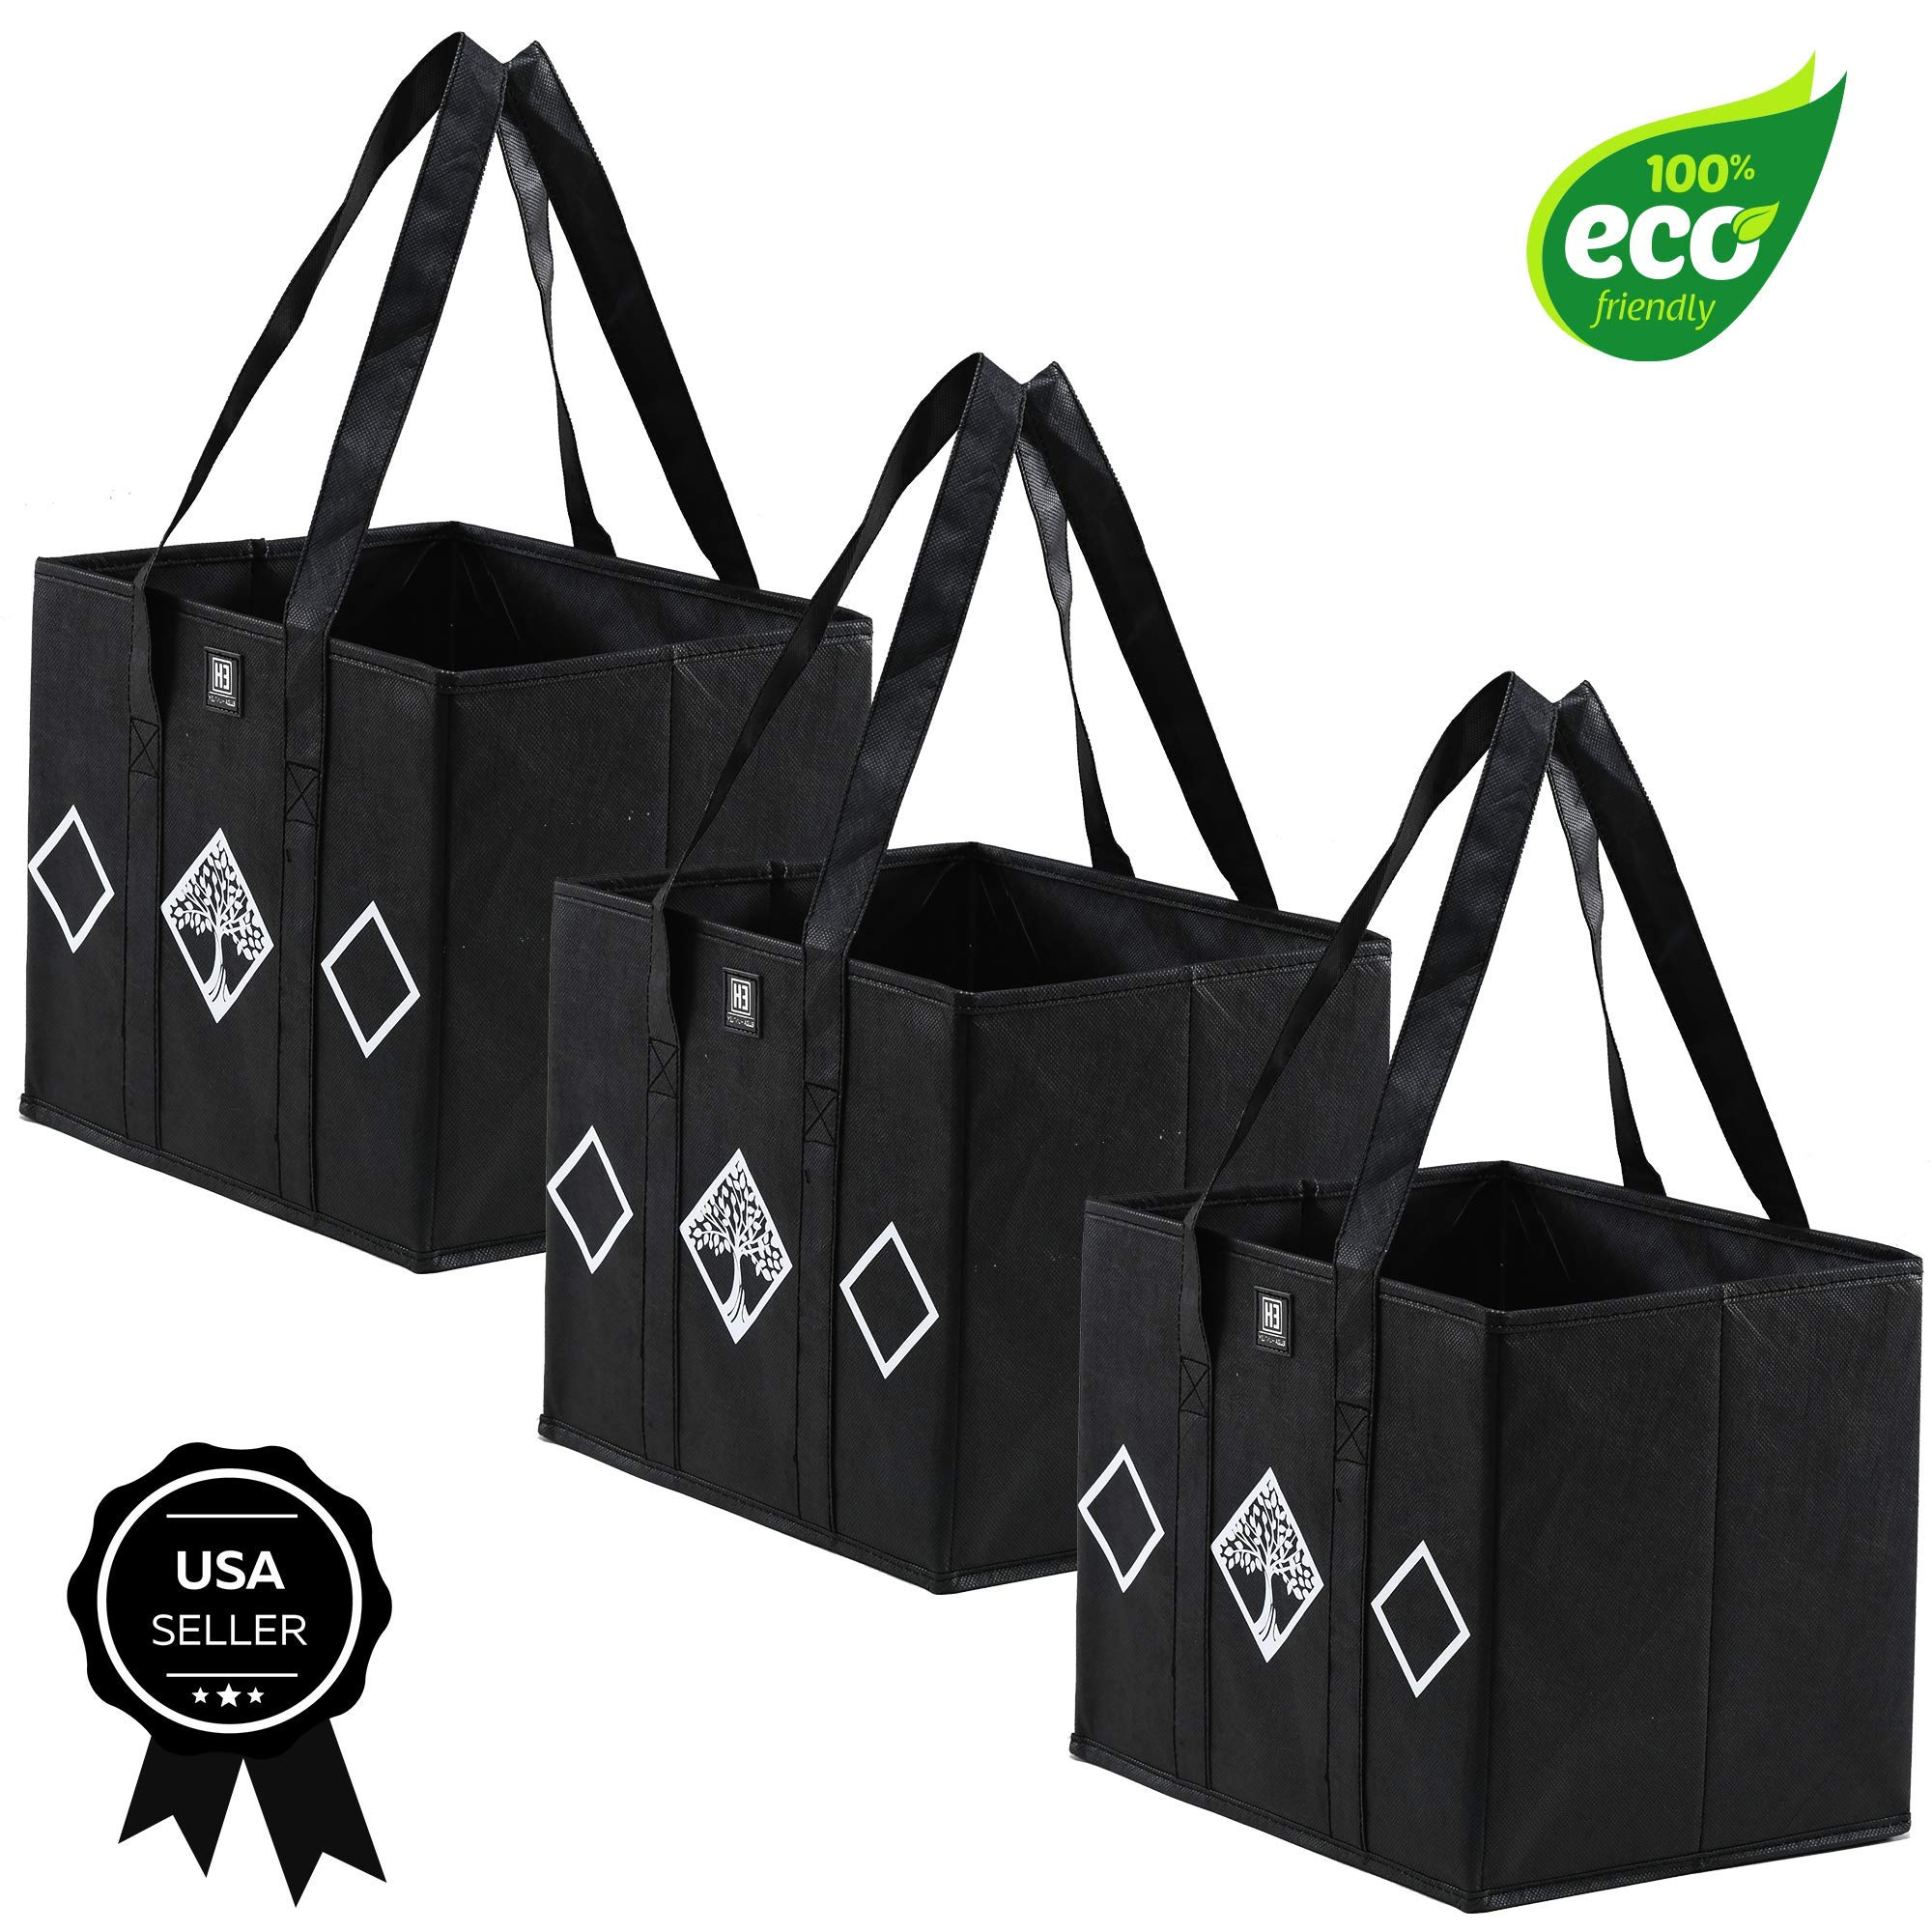 Reusable Grocery Bags by Eliza Huntley – Roomy Shopping Bags – Set of 3-13″ X 11″ X 10″ – Sturdy – Stand by Themselves – Heavy Duty Fabric-Reinforced, Removable Bottom – Collapsible – Charcoal Gray